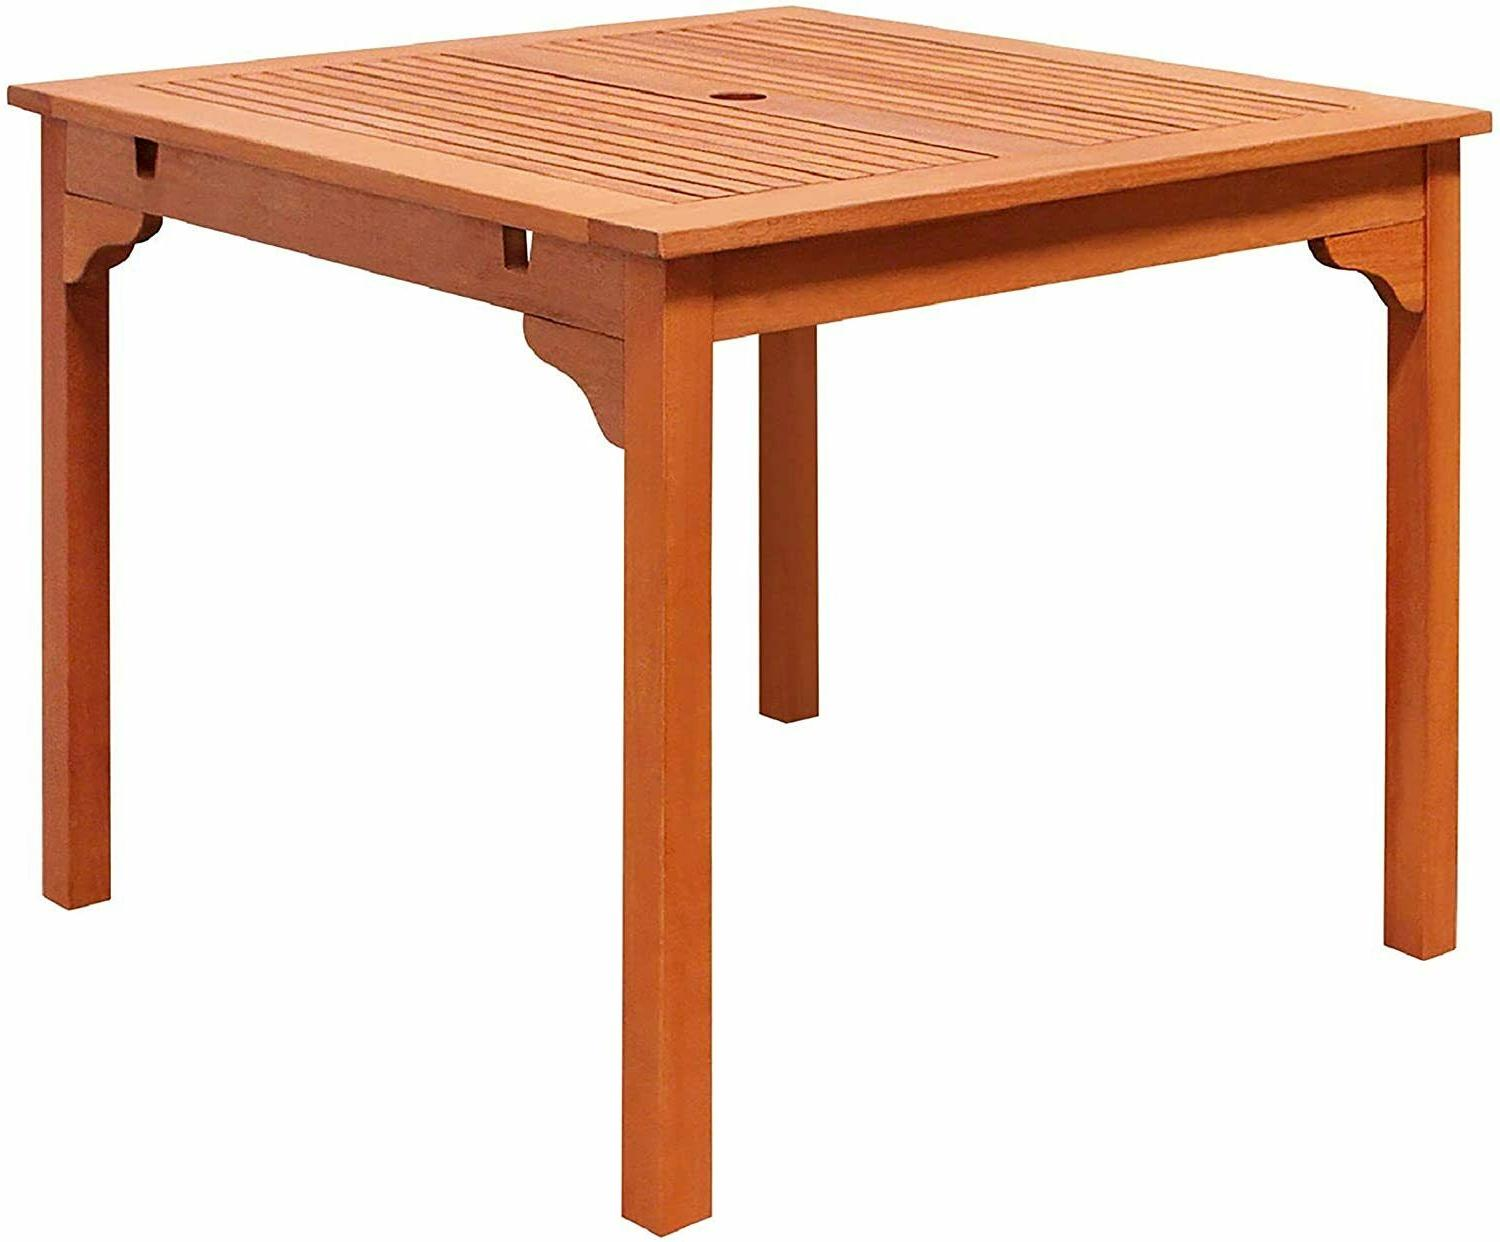 Outdoor Stacking Table Dining Patio Yard Garden Lawn Solid W